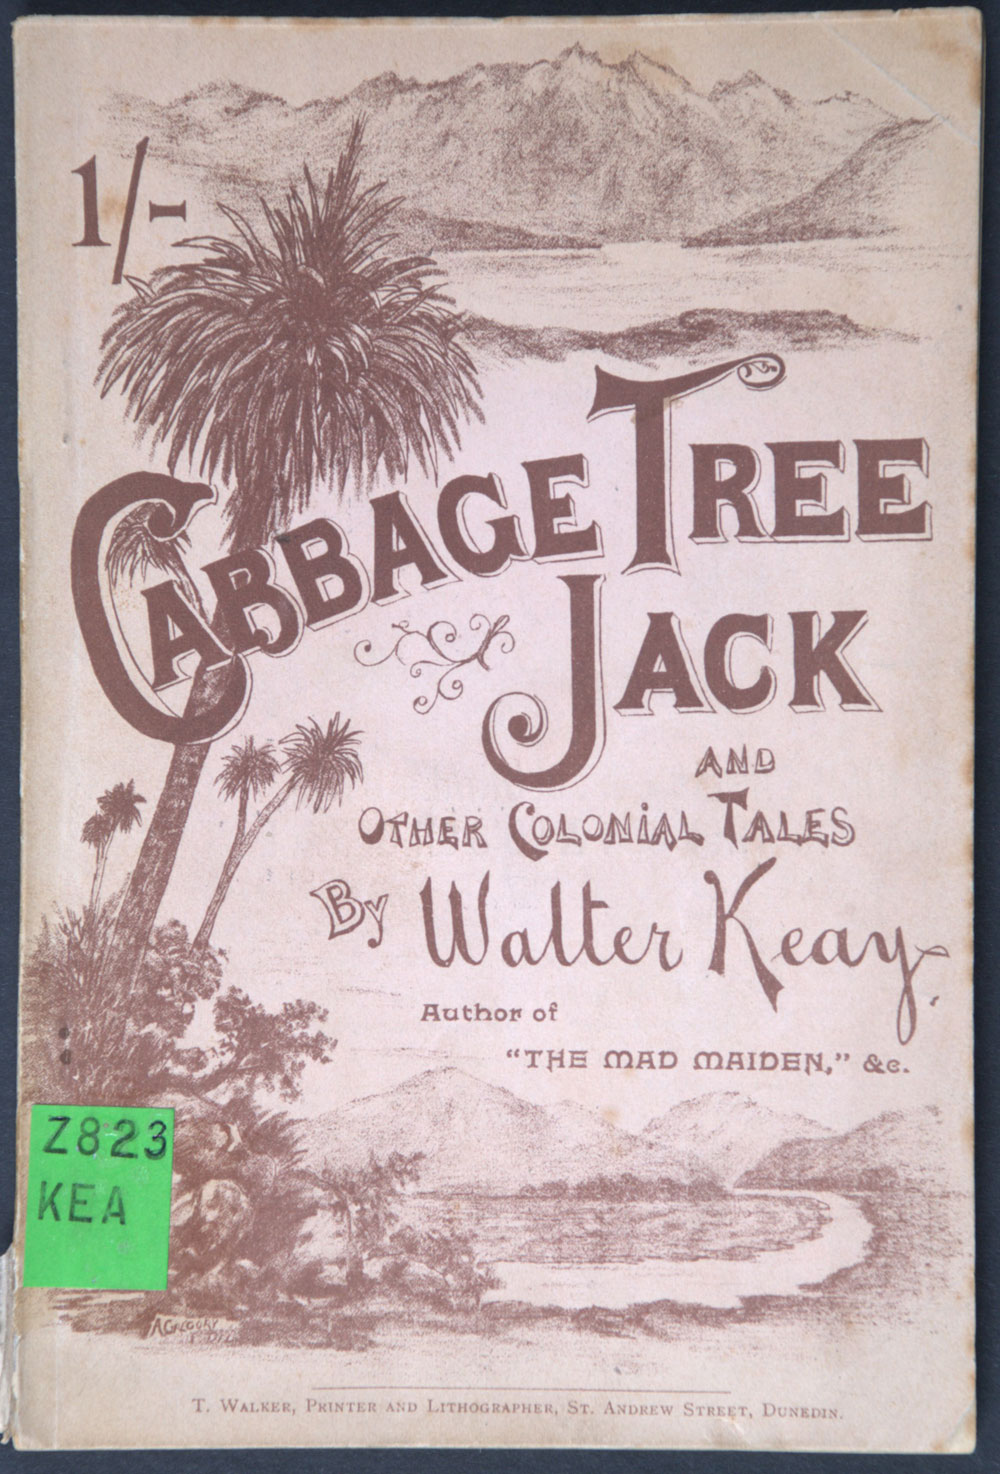 Walter Keay. <em>Cabbage tree Jack and other colonial tales.</em> Dunedin: T. Walker, 1894.